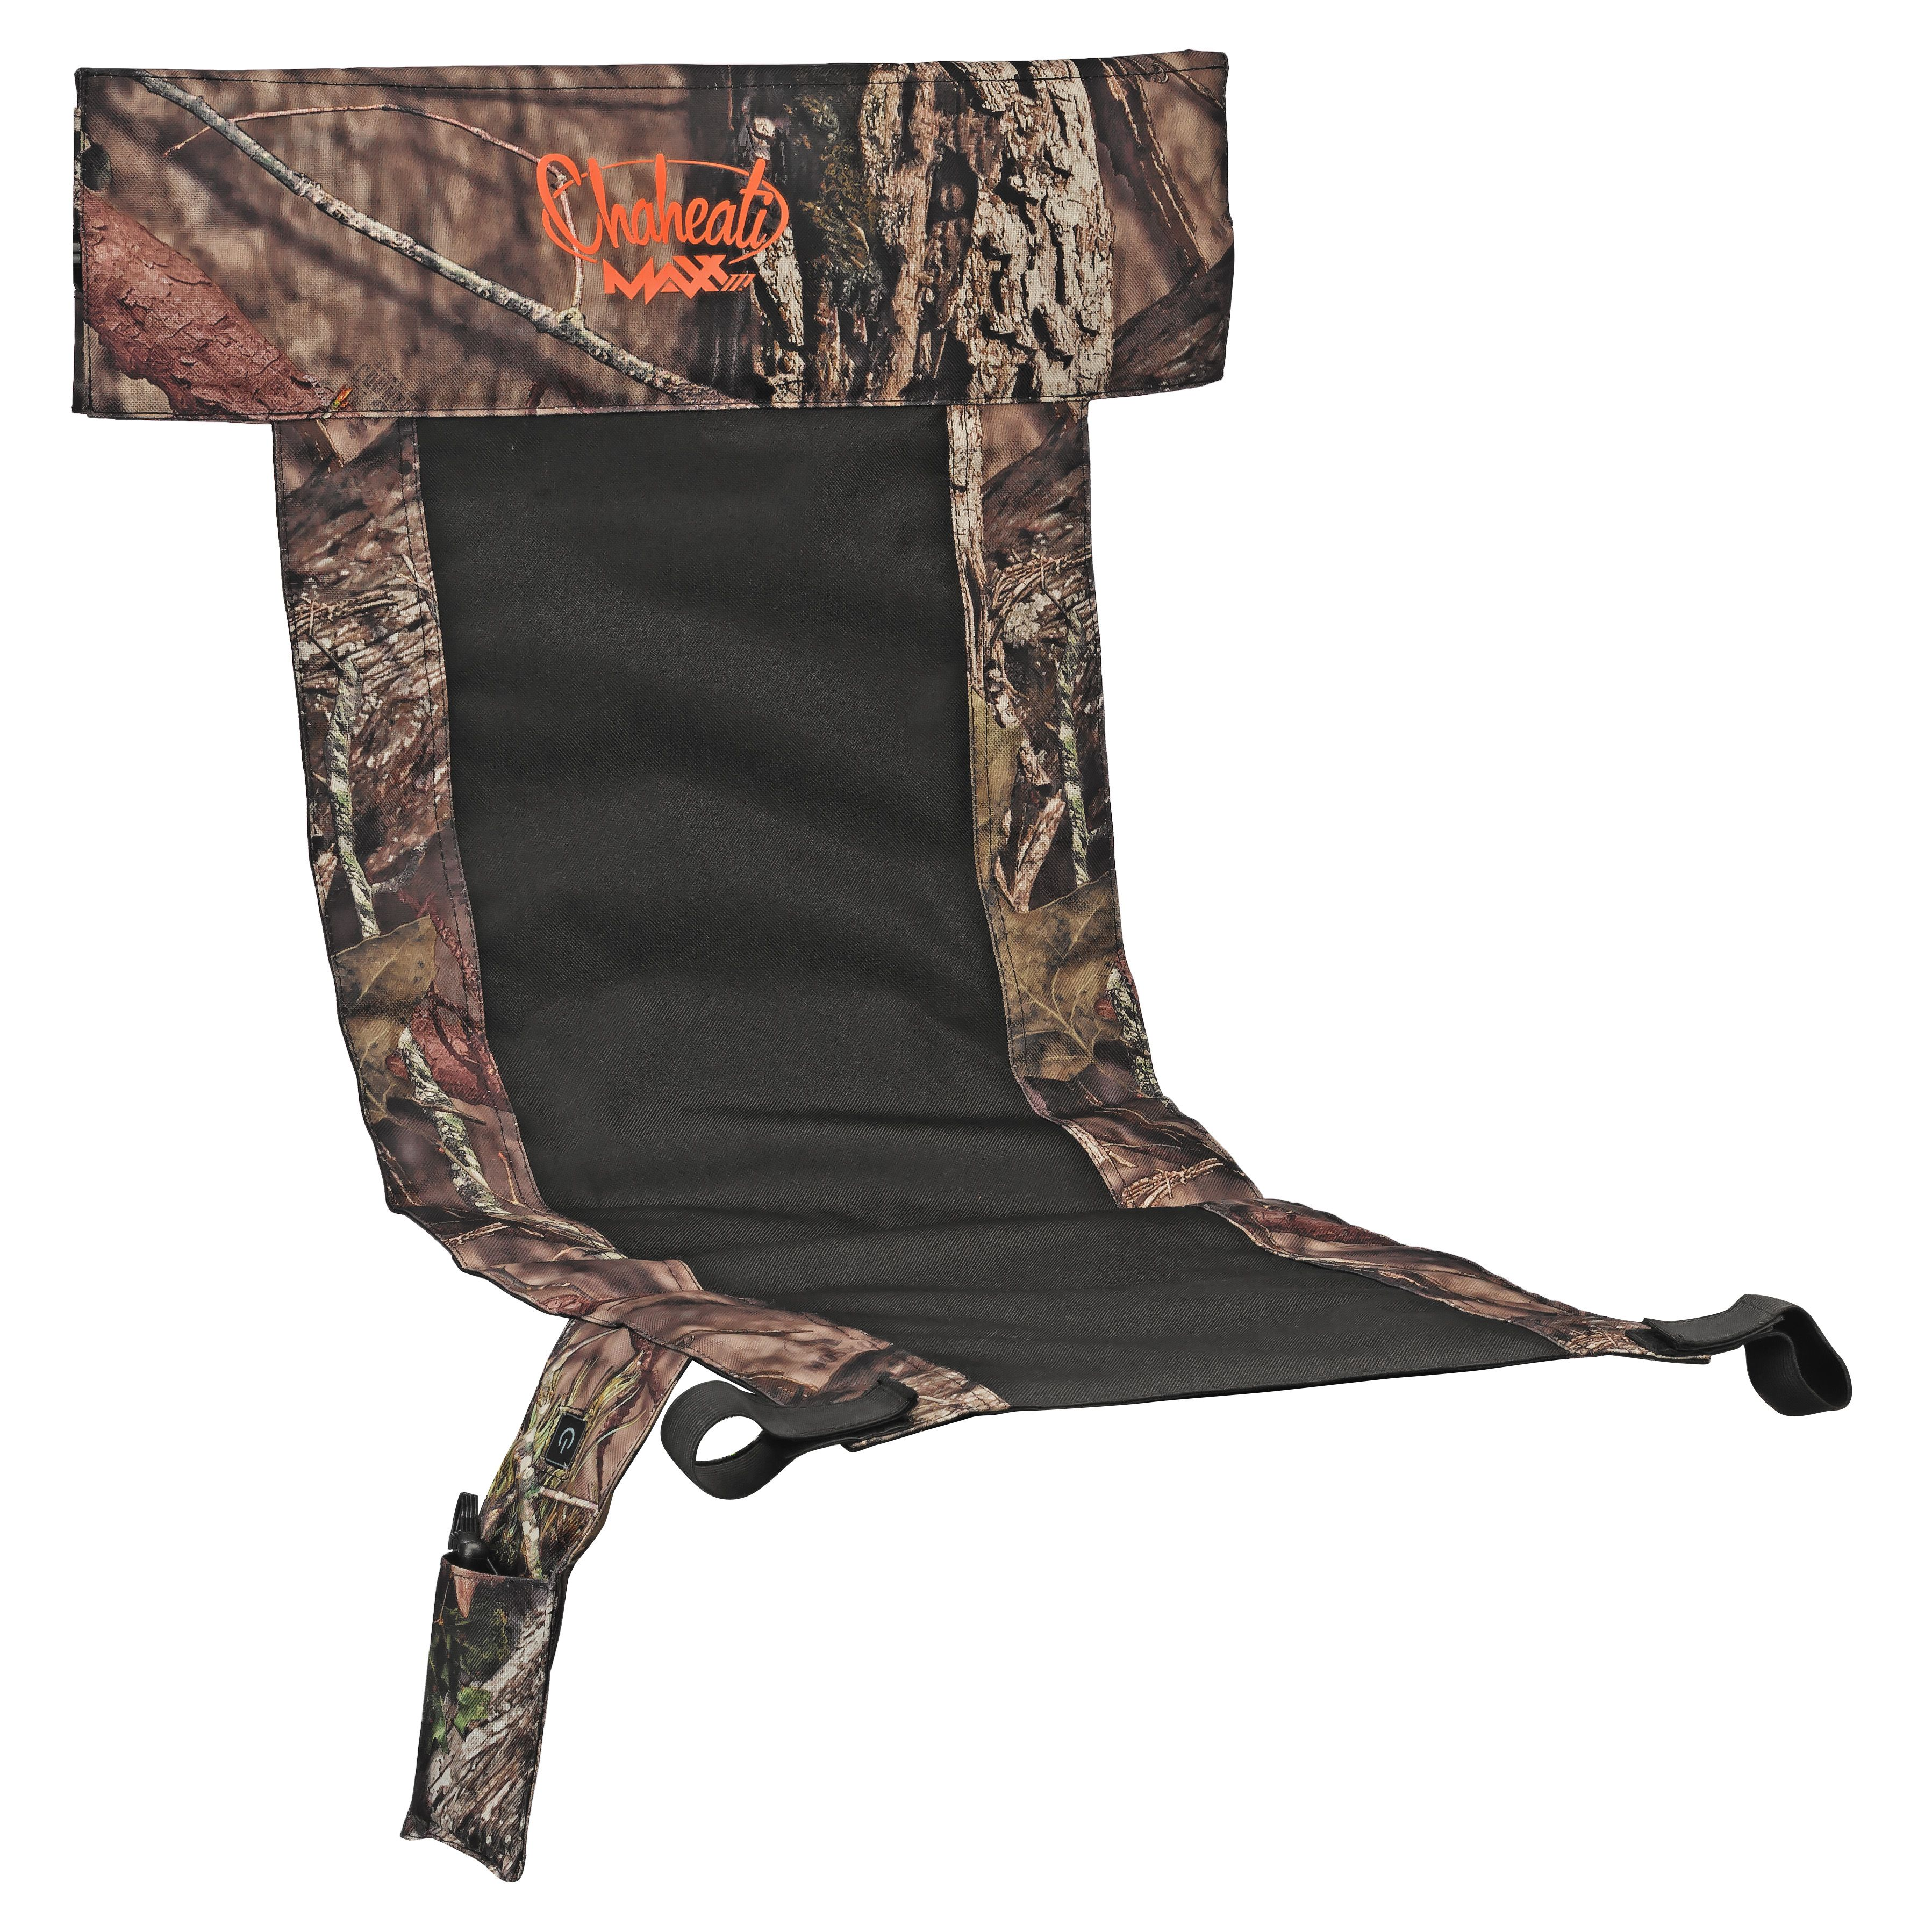 Mossy Oak Maxx Heated Add On Heated seat covers, Camping